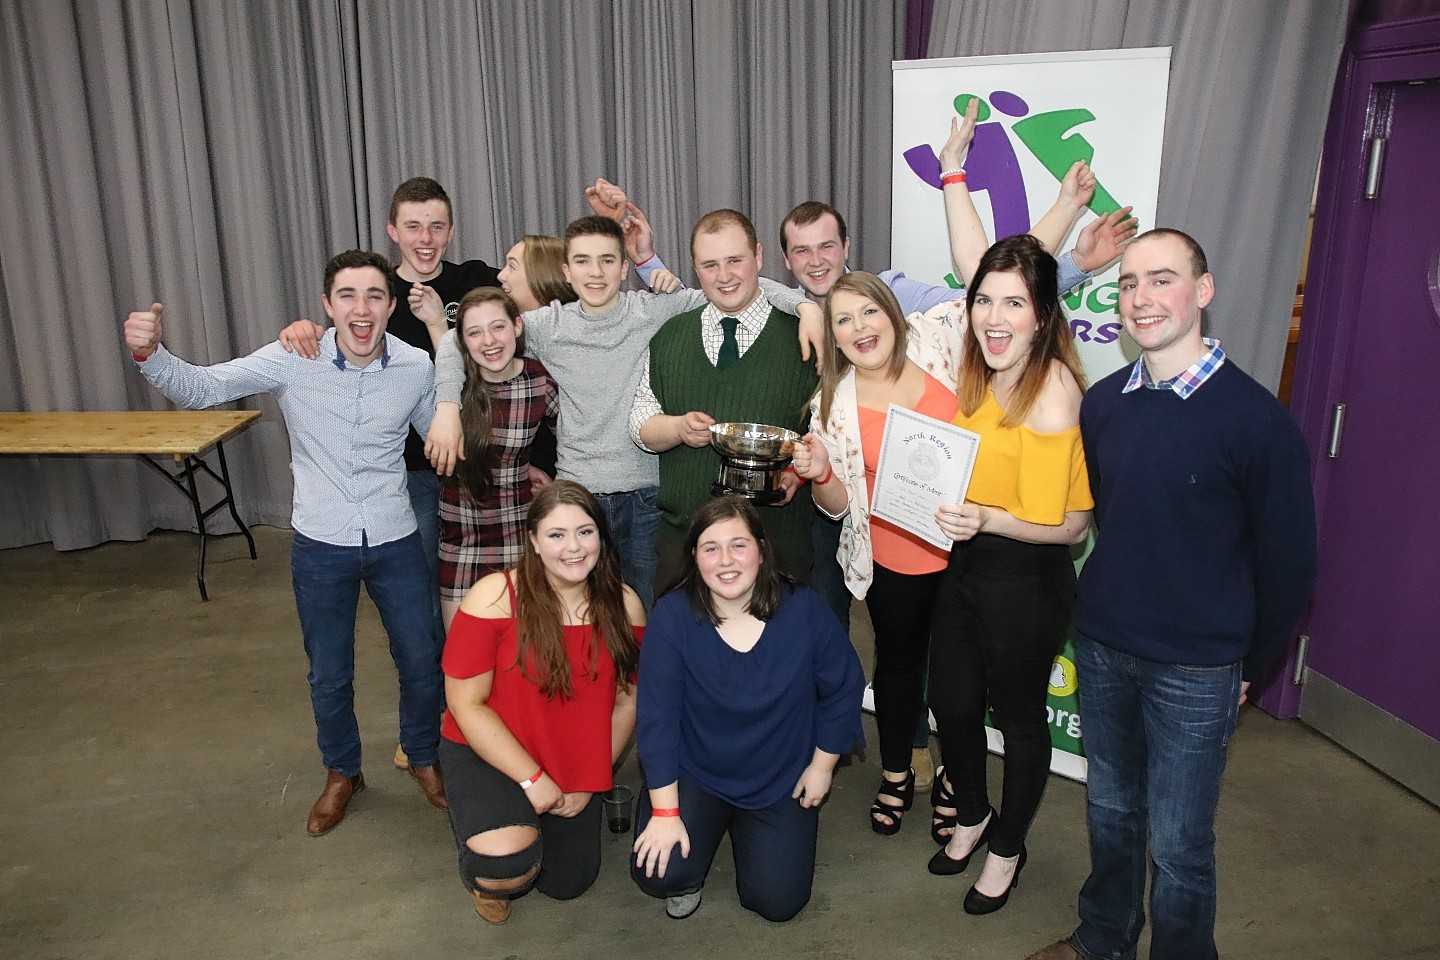 The winning team from Alford and Mid Deeside YFC with William Mackie from the sponsors